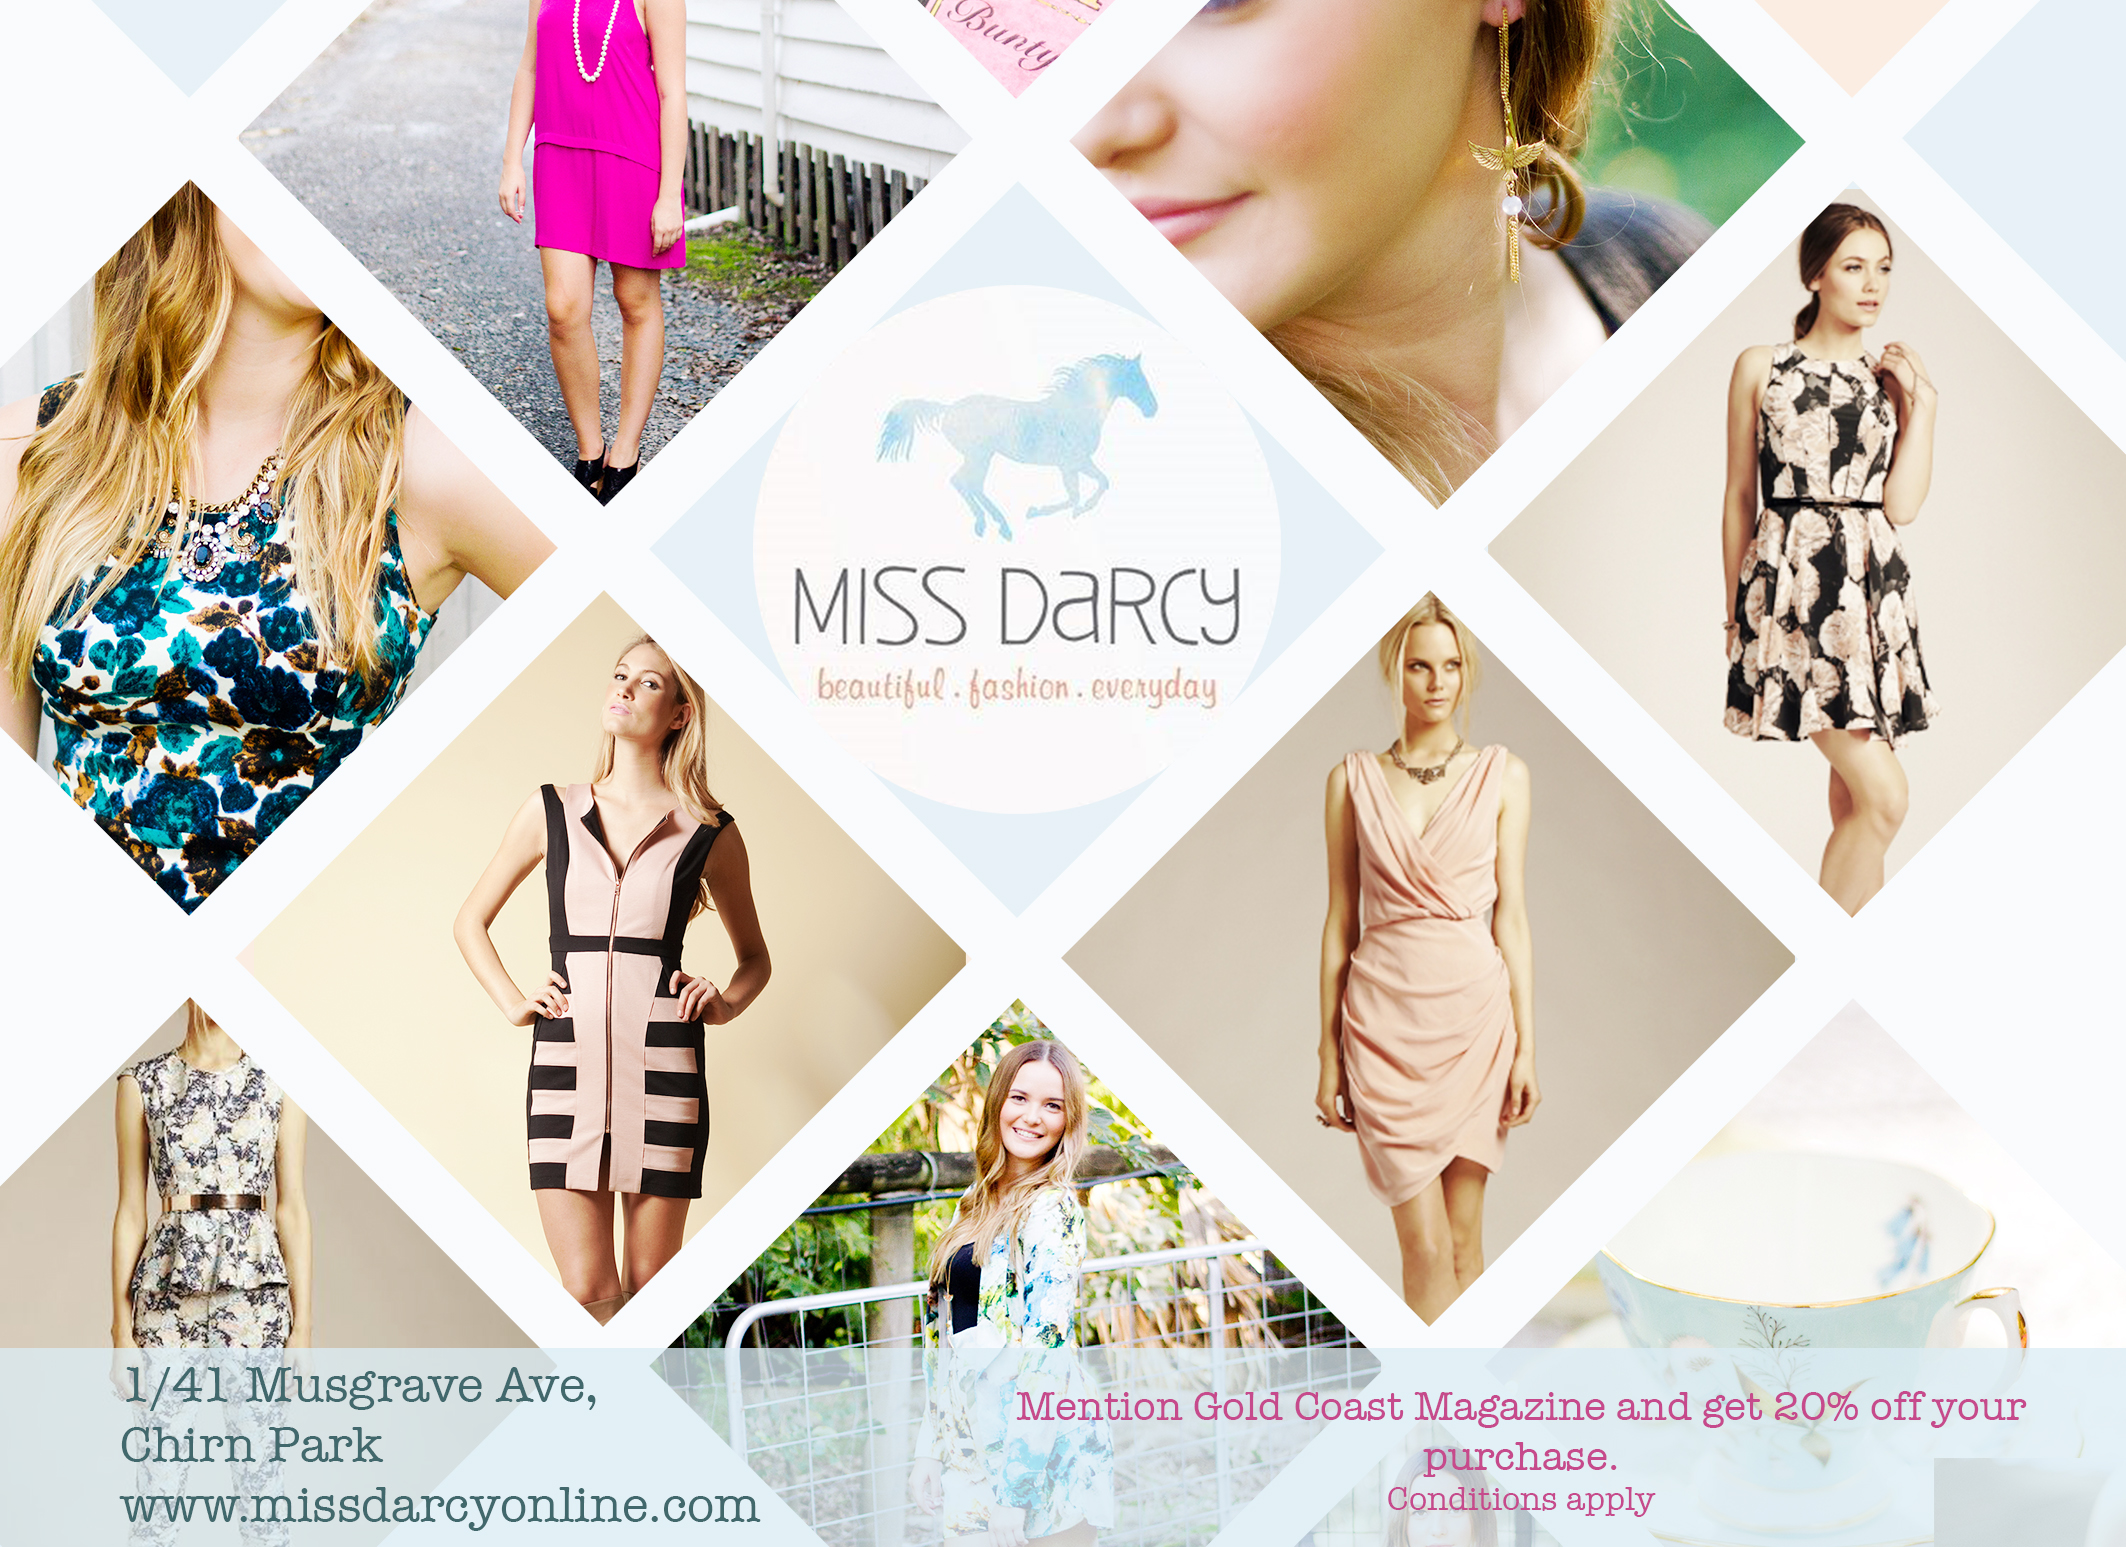 Miss Darcy Boutique